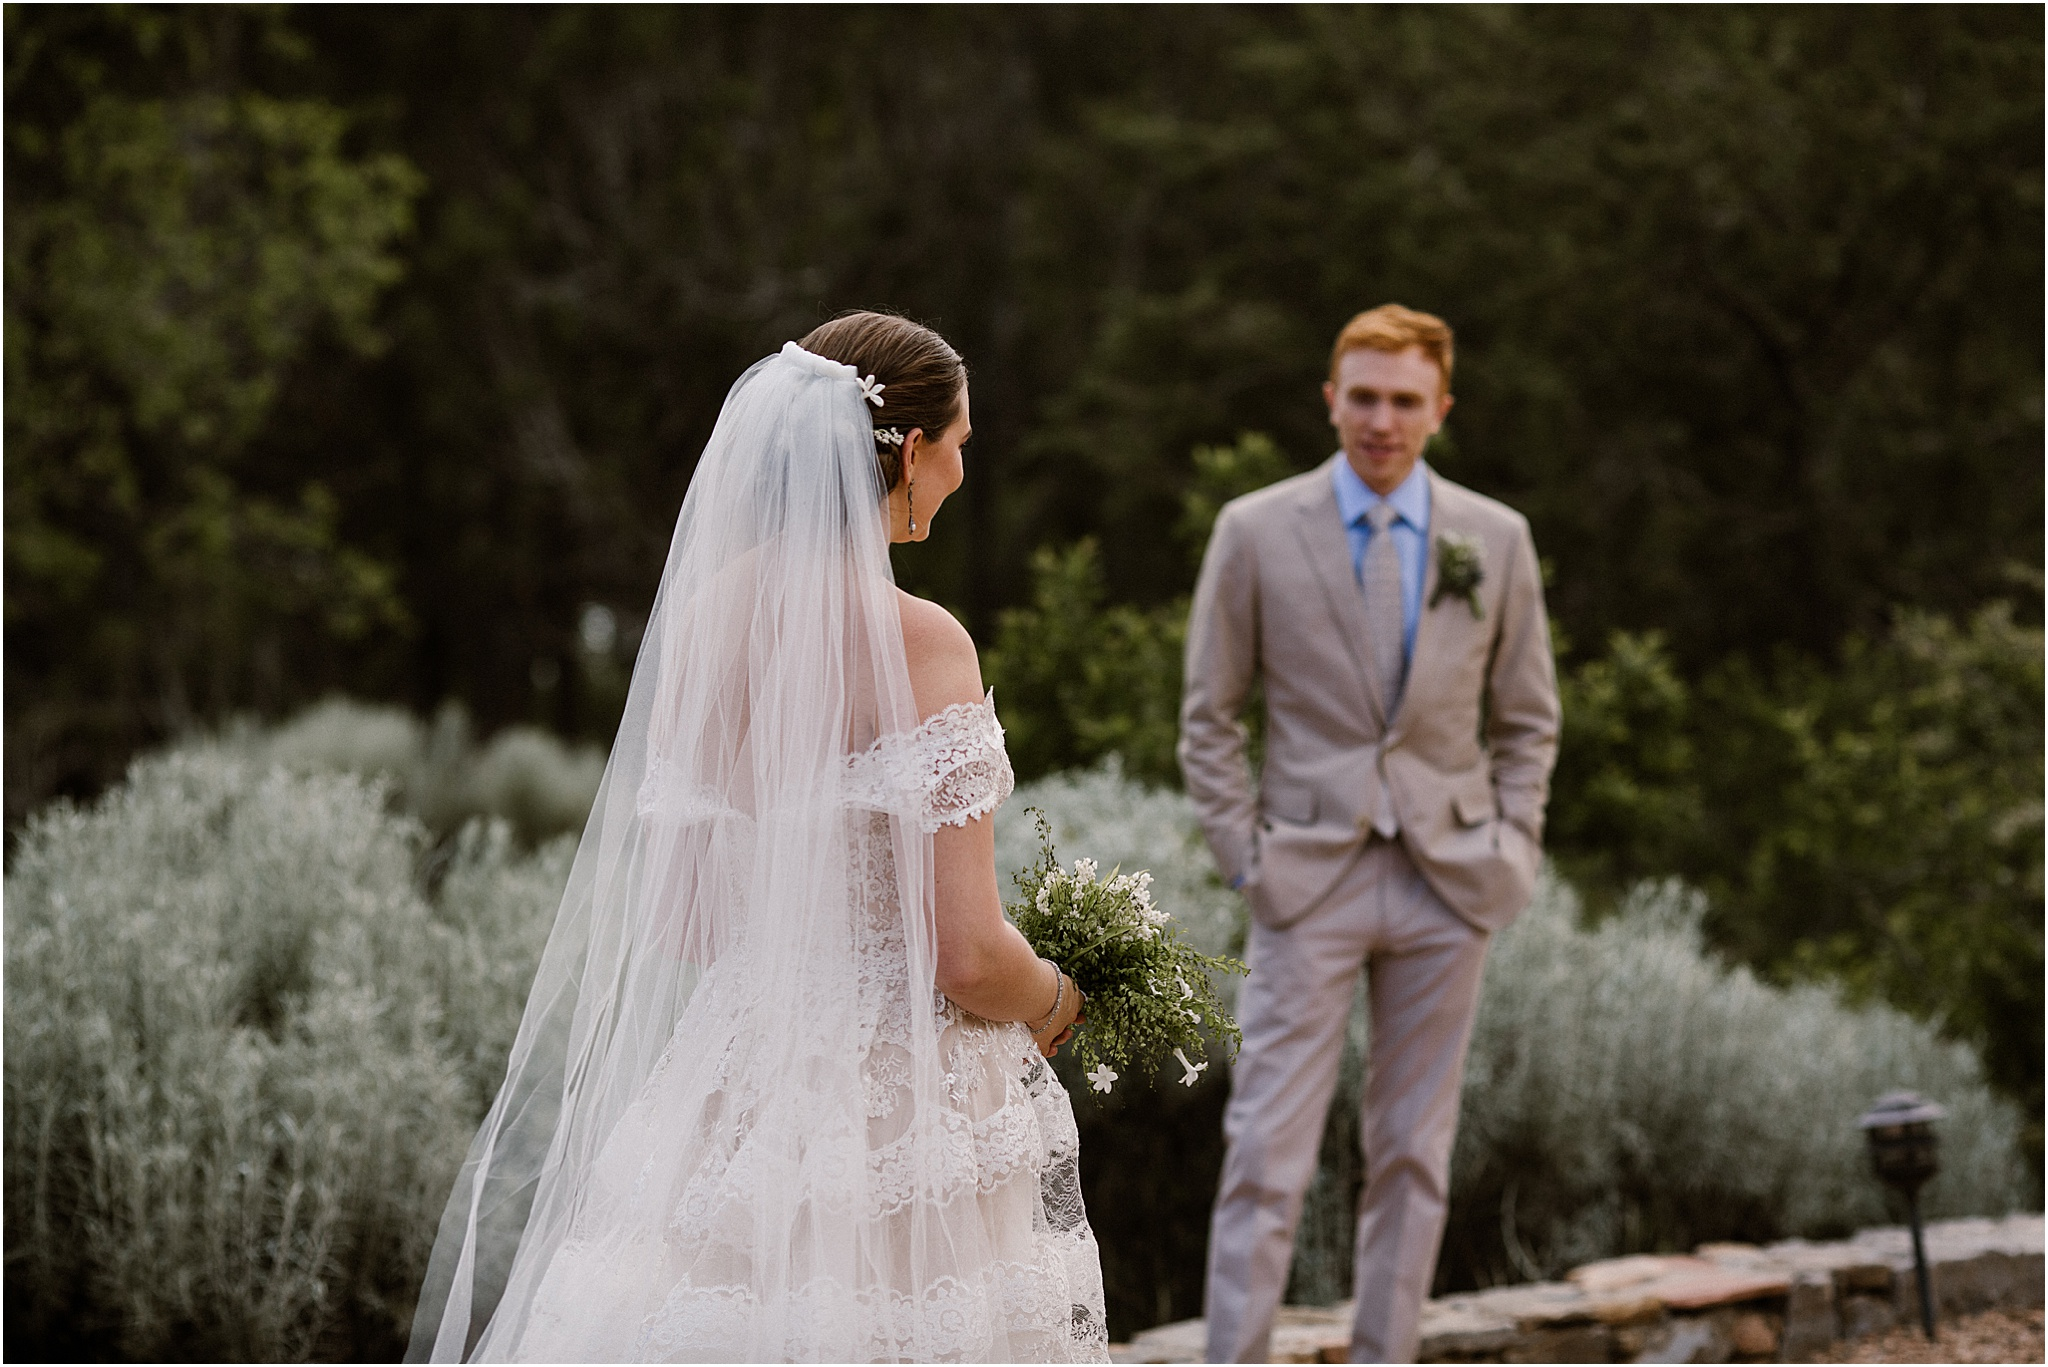 AMELIA_JASON_SANTA FE_ WEDDING_BLUE ROSE PHOTOGRAPHY87